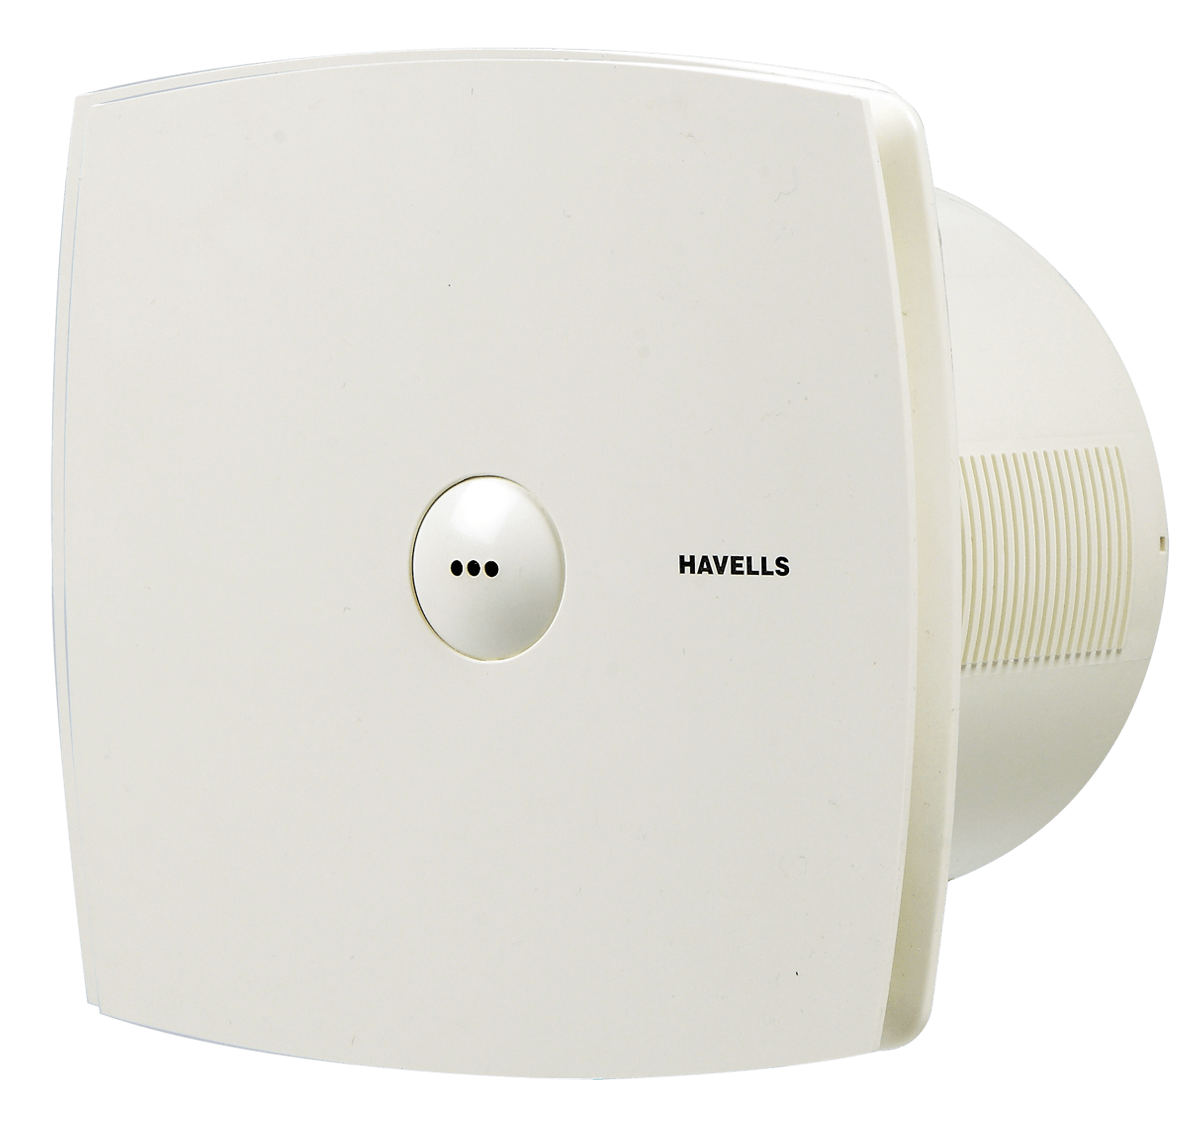 Buy Havells Vento Jet 10 Auto Exhaust Fan Best Prices